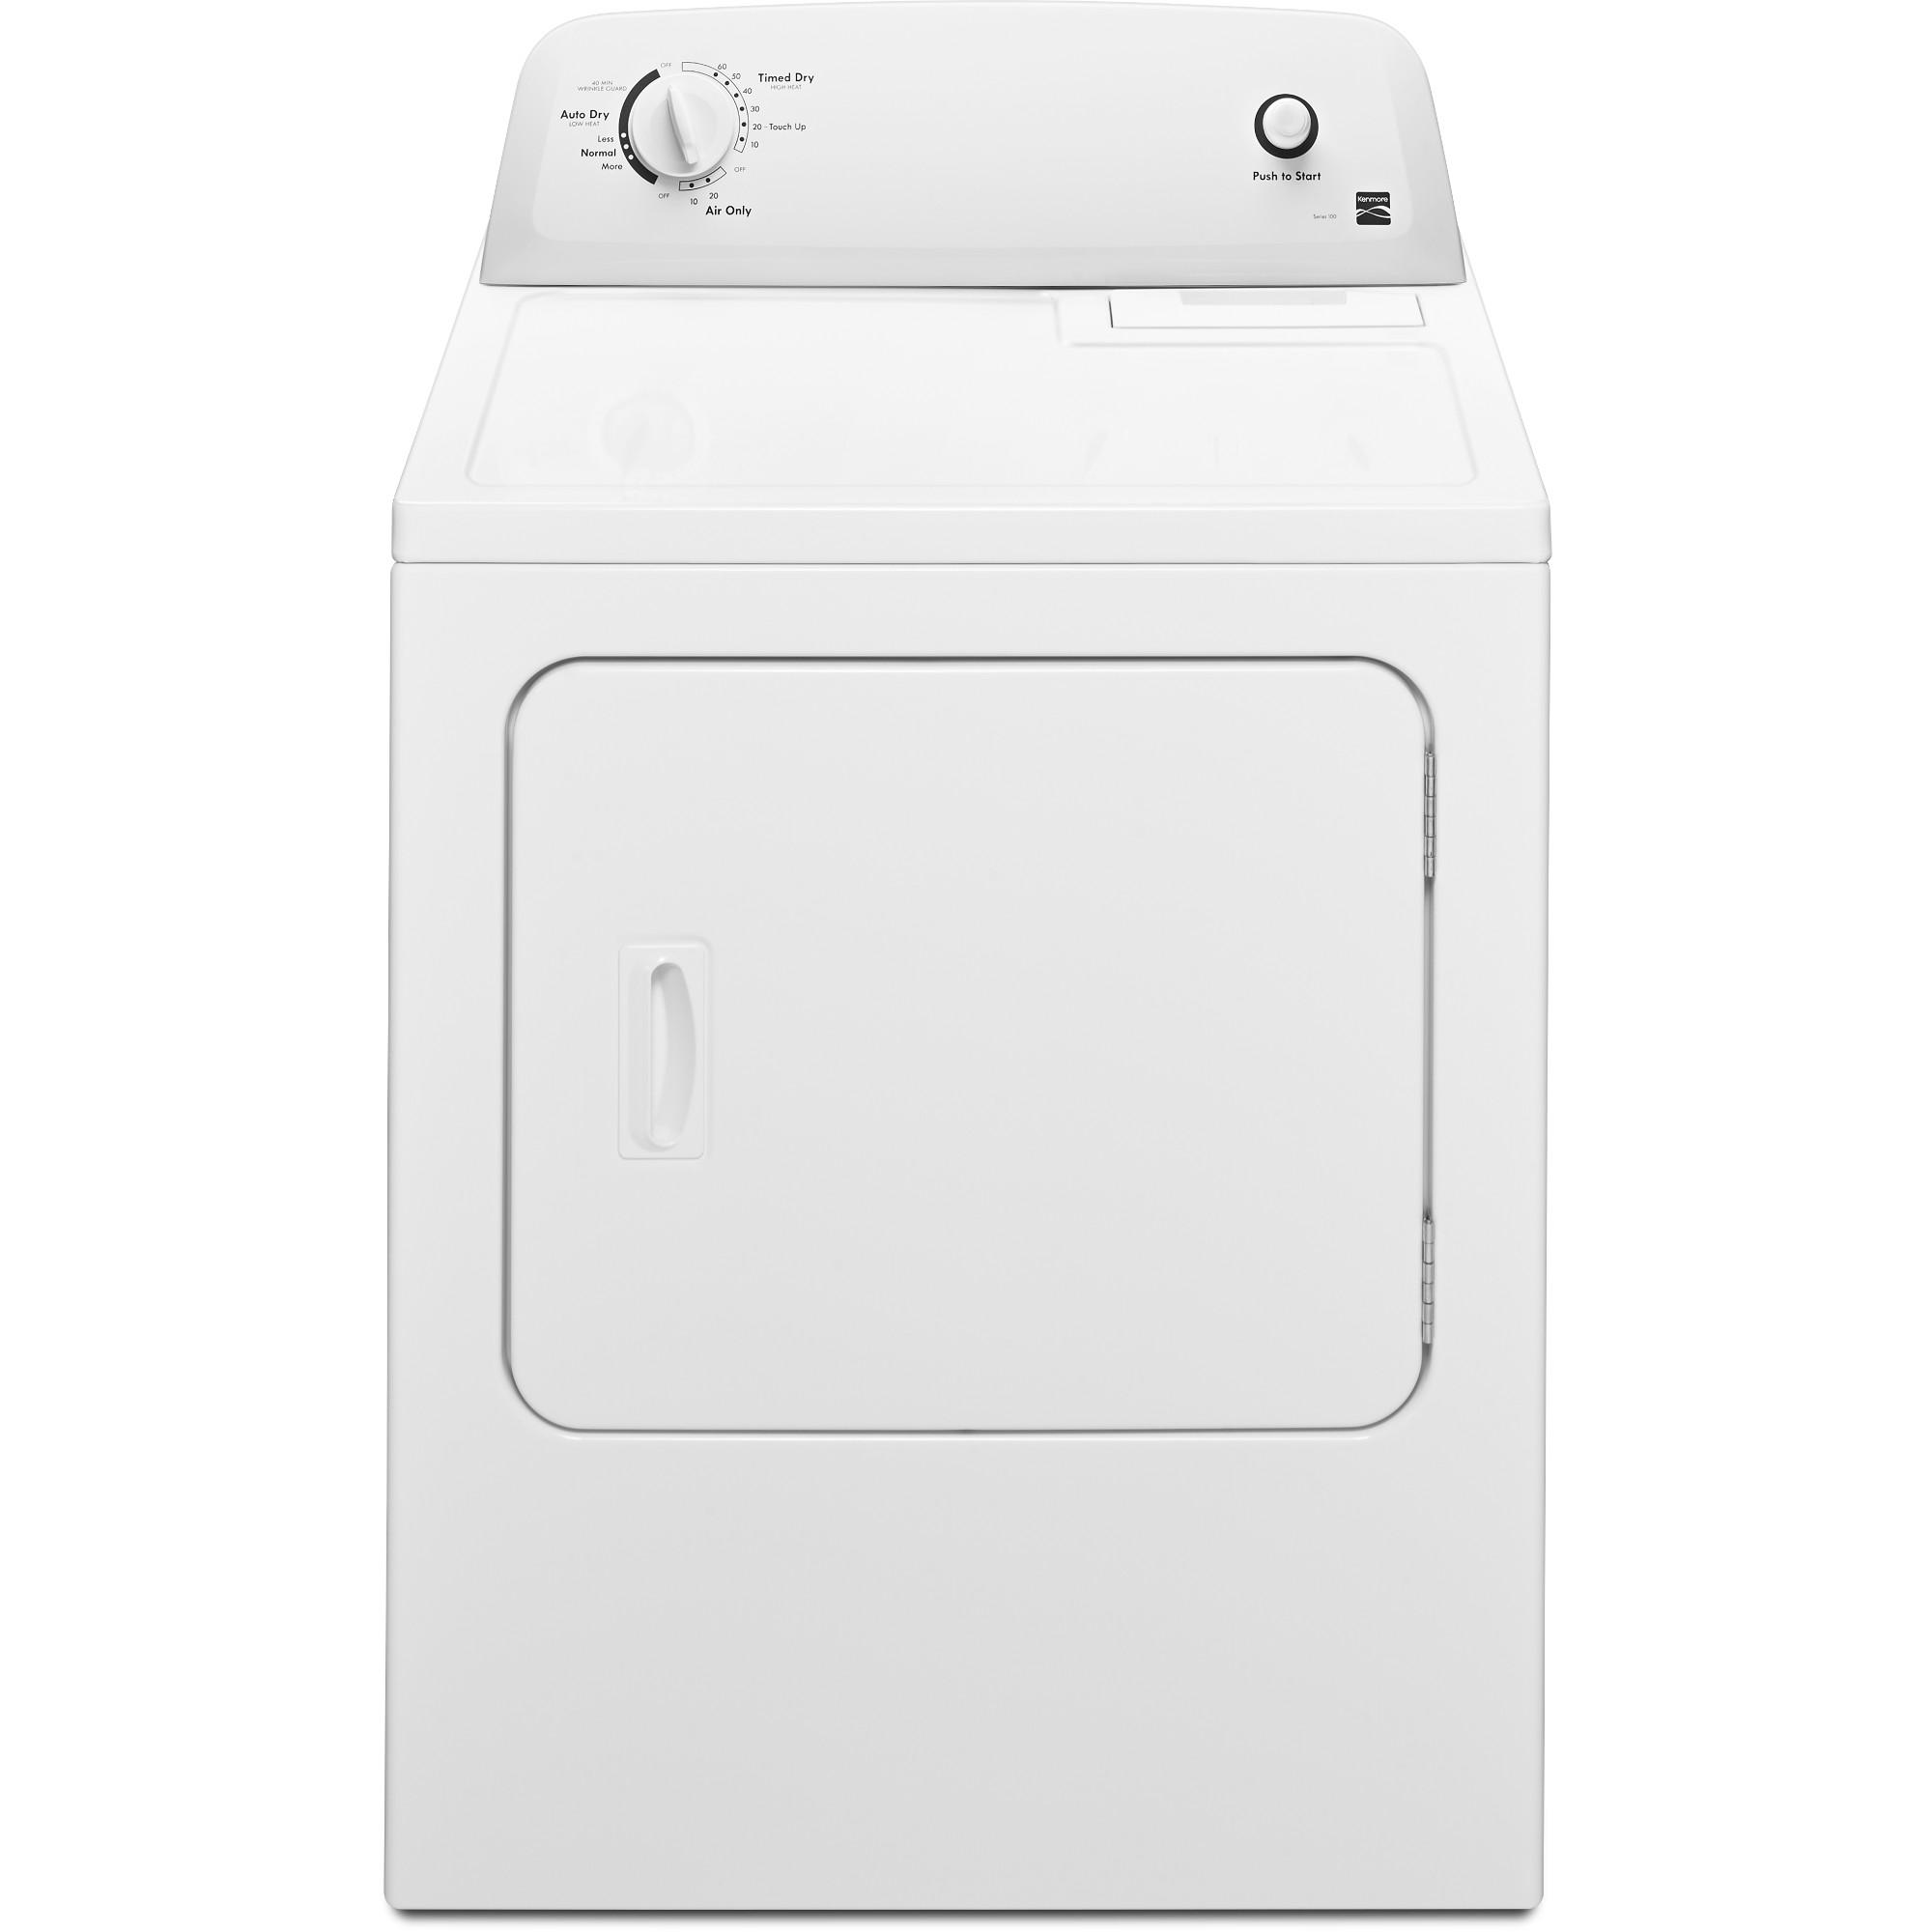 Kenmore-60222-6-5-cu-ft-Electric-Dryer-White